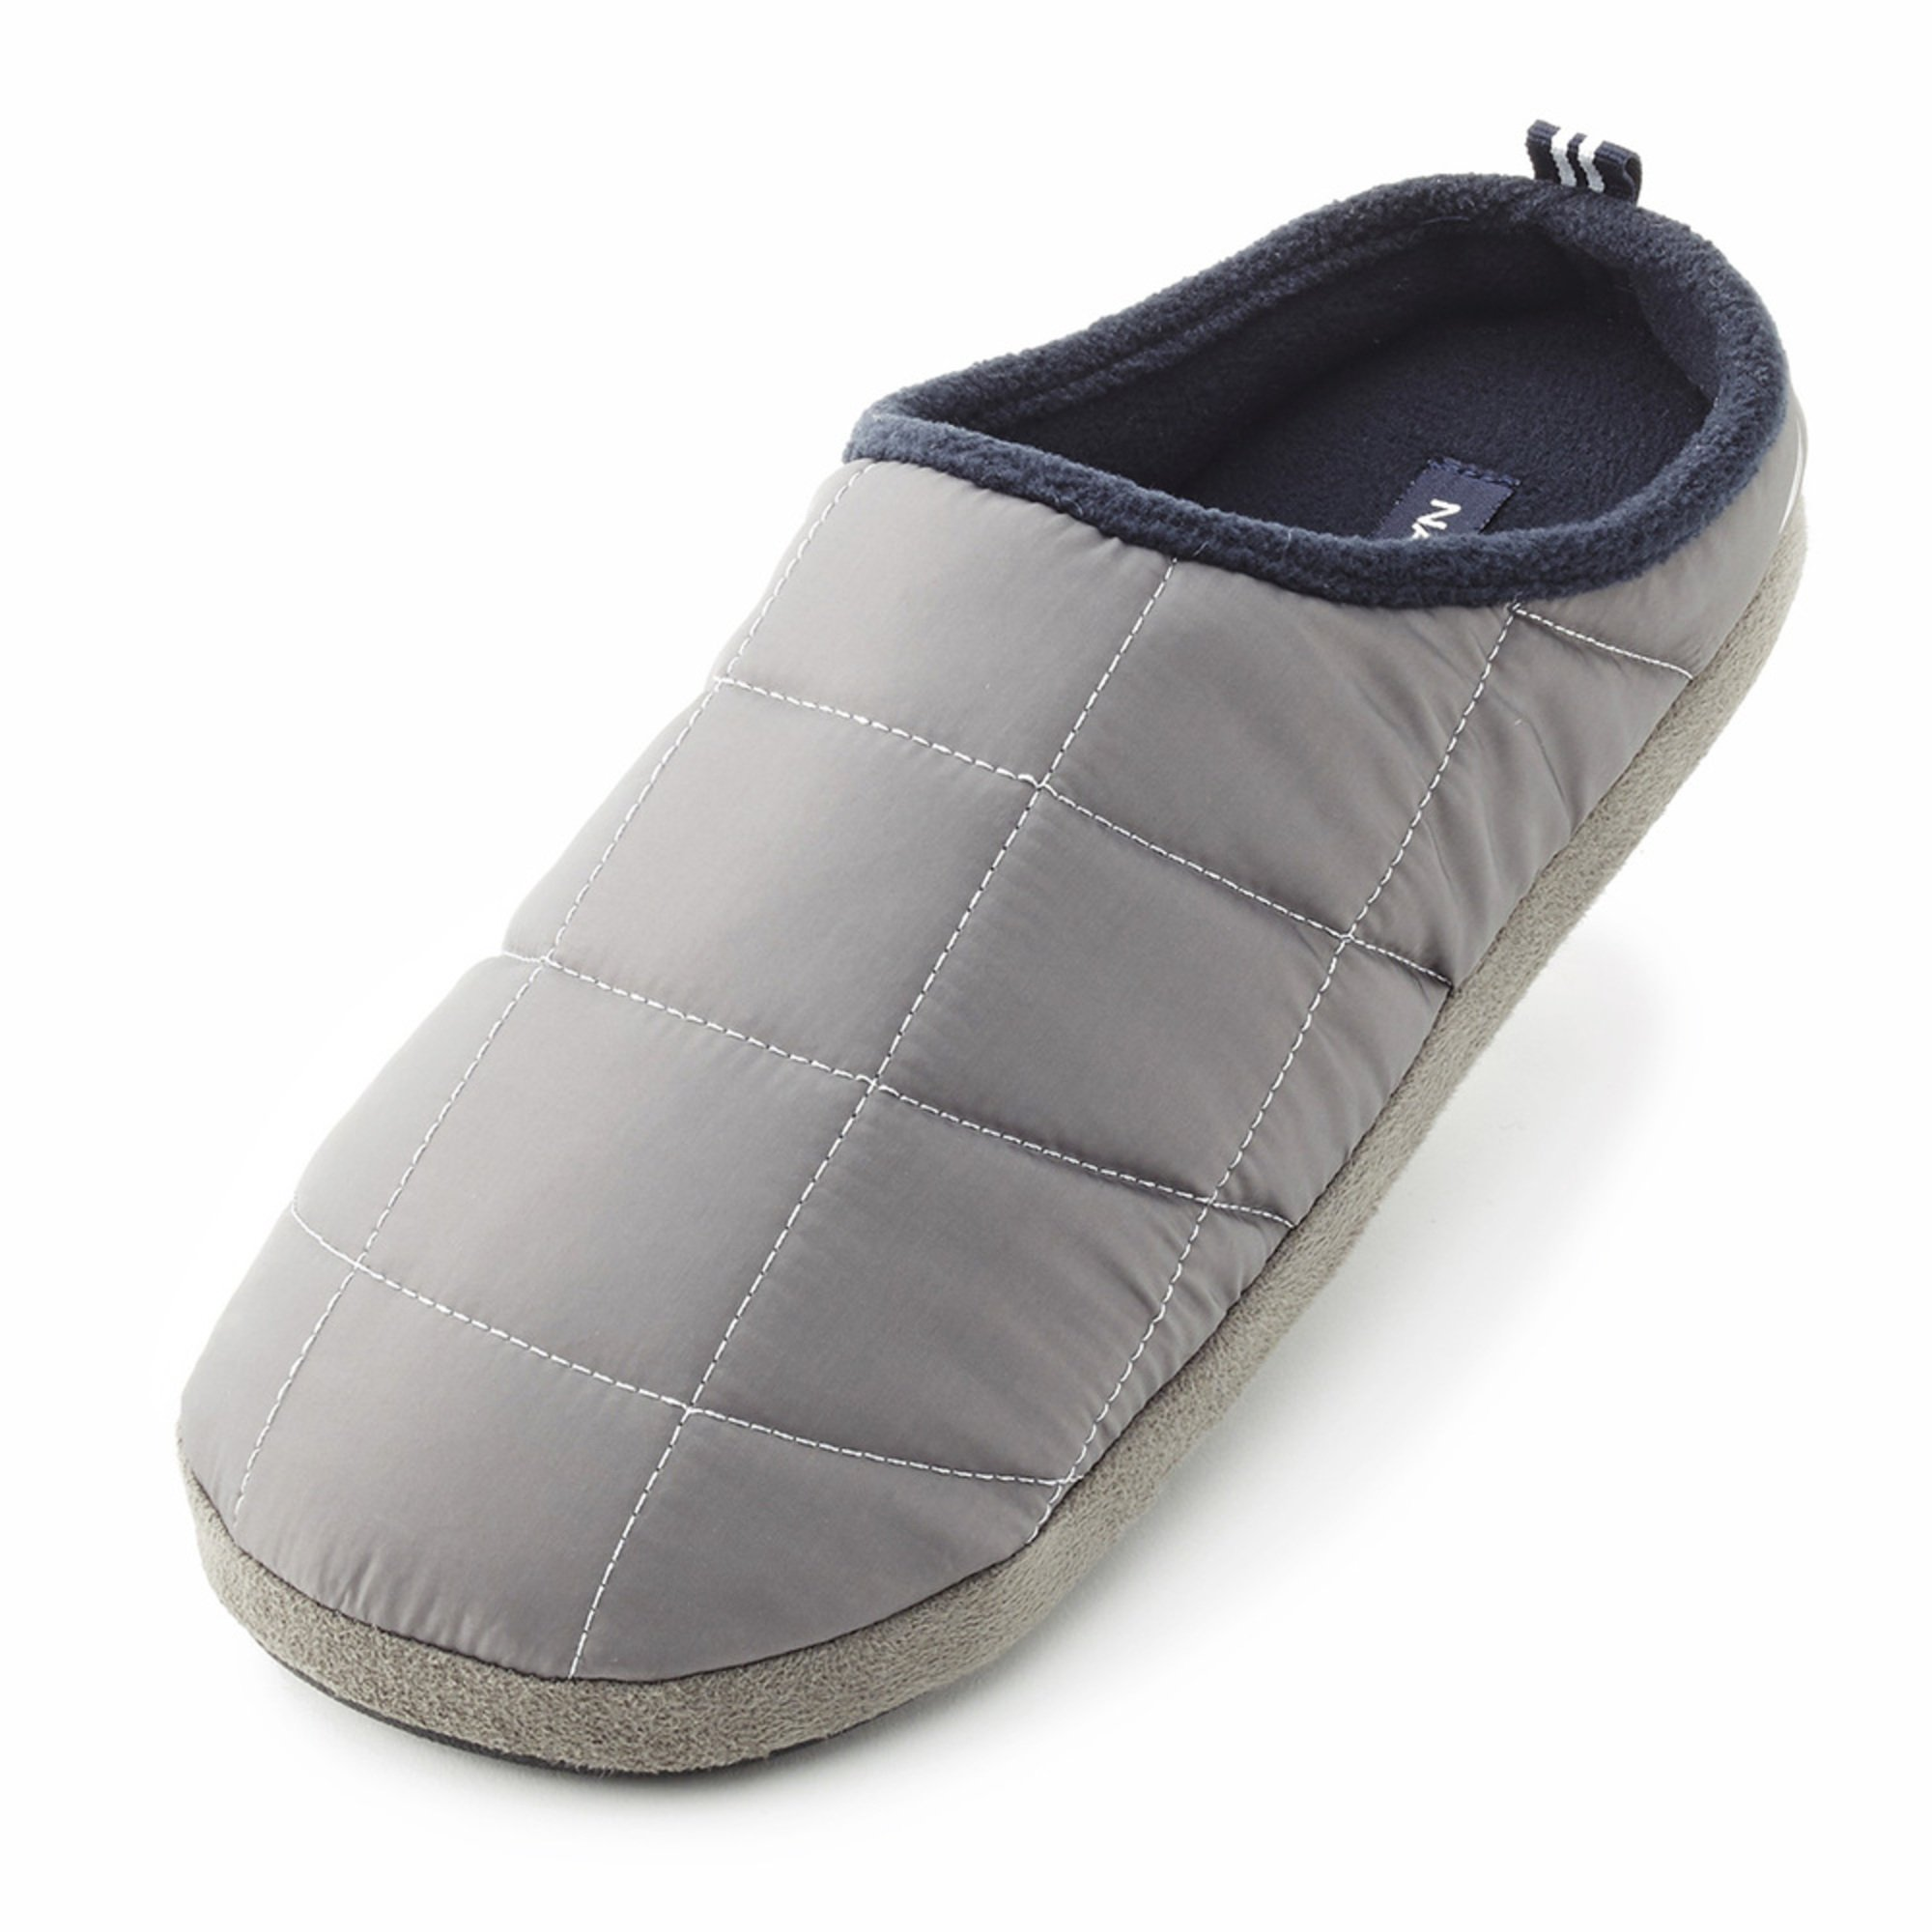 Mens Bedroom Slippers Mens Bedroom Slippers Shop Your Navy Exchange Official Site